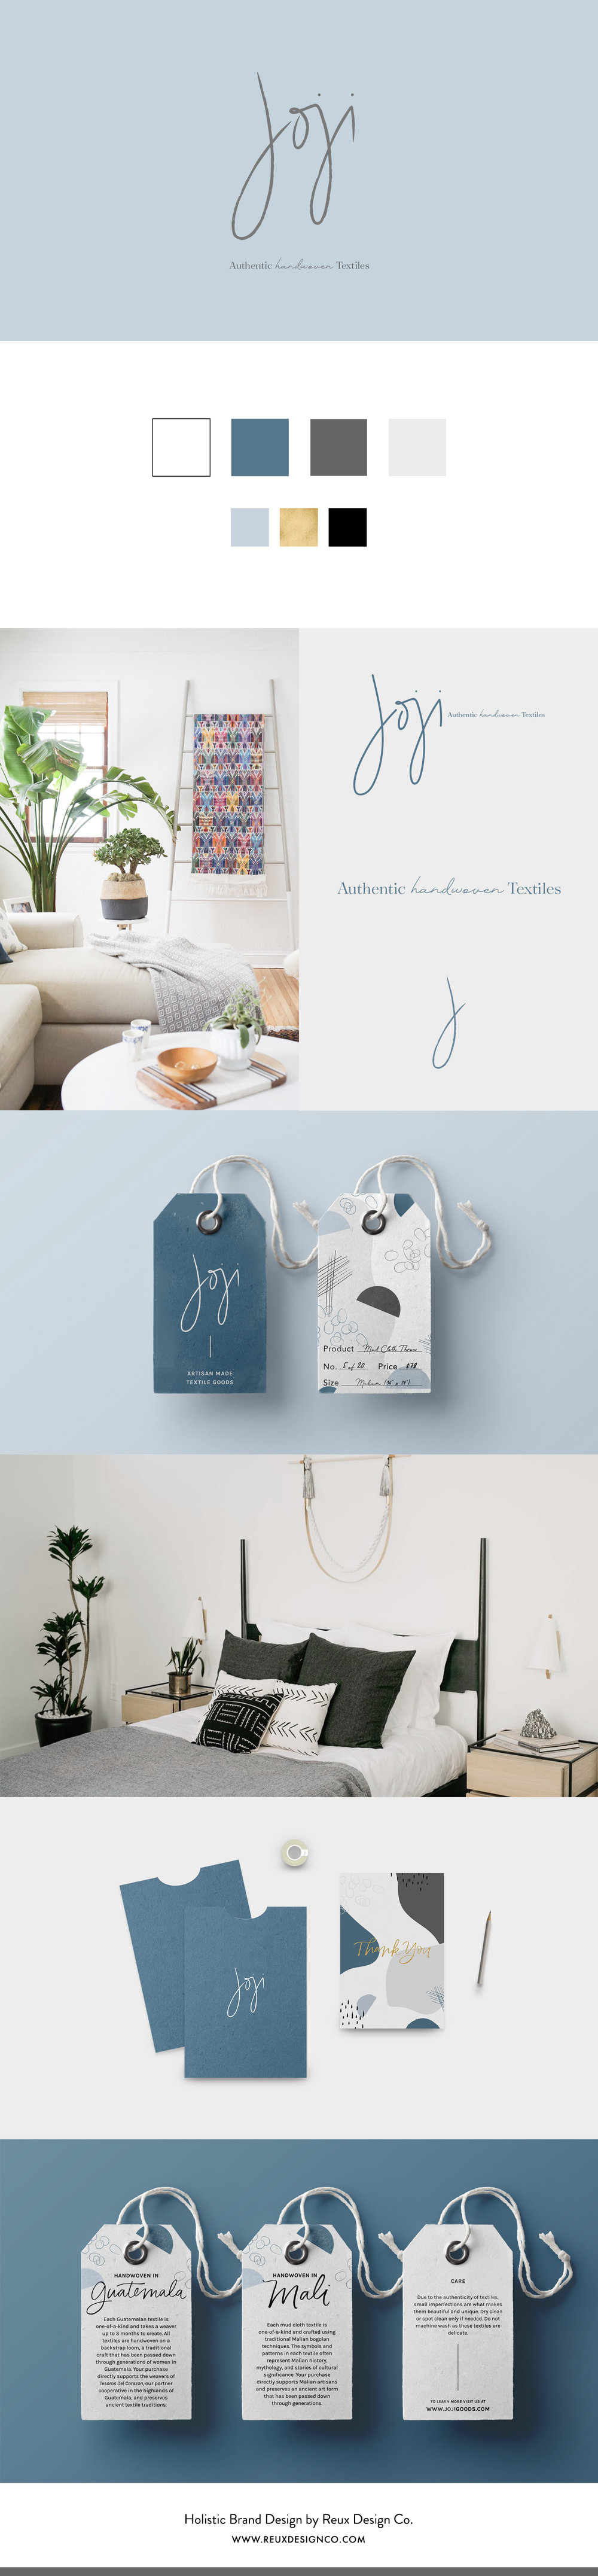 Holistic Brand Design for Joji Goods - an artisan textile company | Branding by Reux Design Co. for sustainable, conscious creatives and businesses | Modern, neutral, blue brand design for home goods company | Reux Design Co.